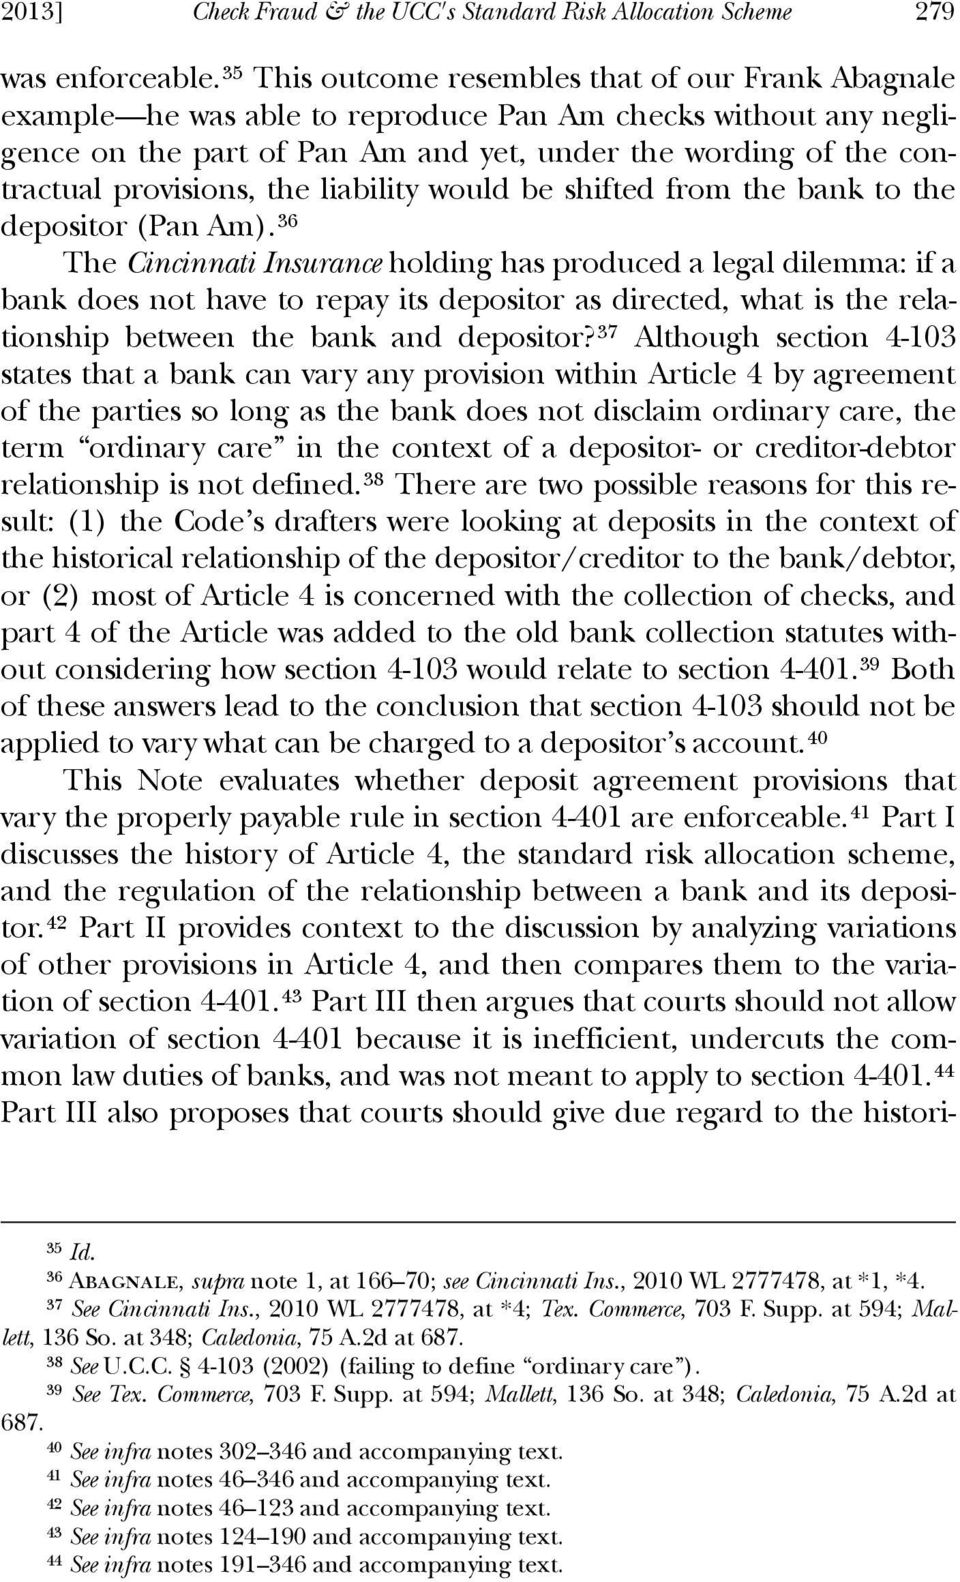 provisions, the liability would be shifted from the bank to the depositor (Pan Am).